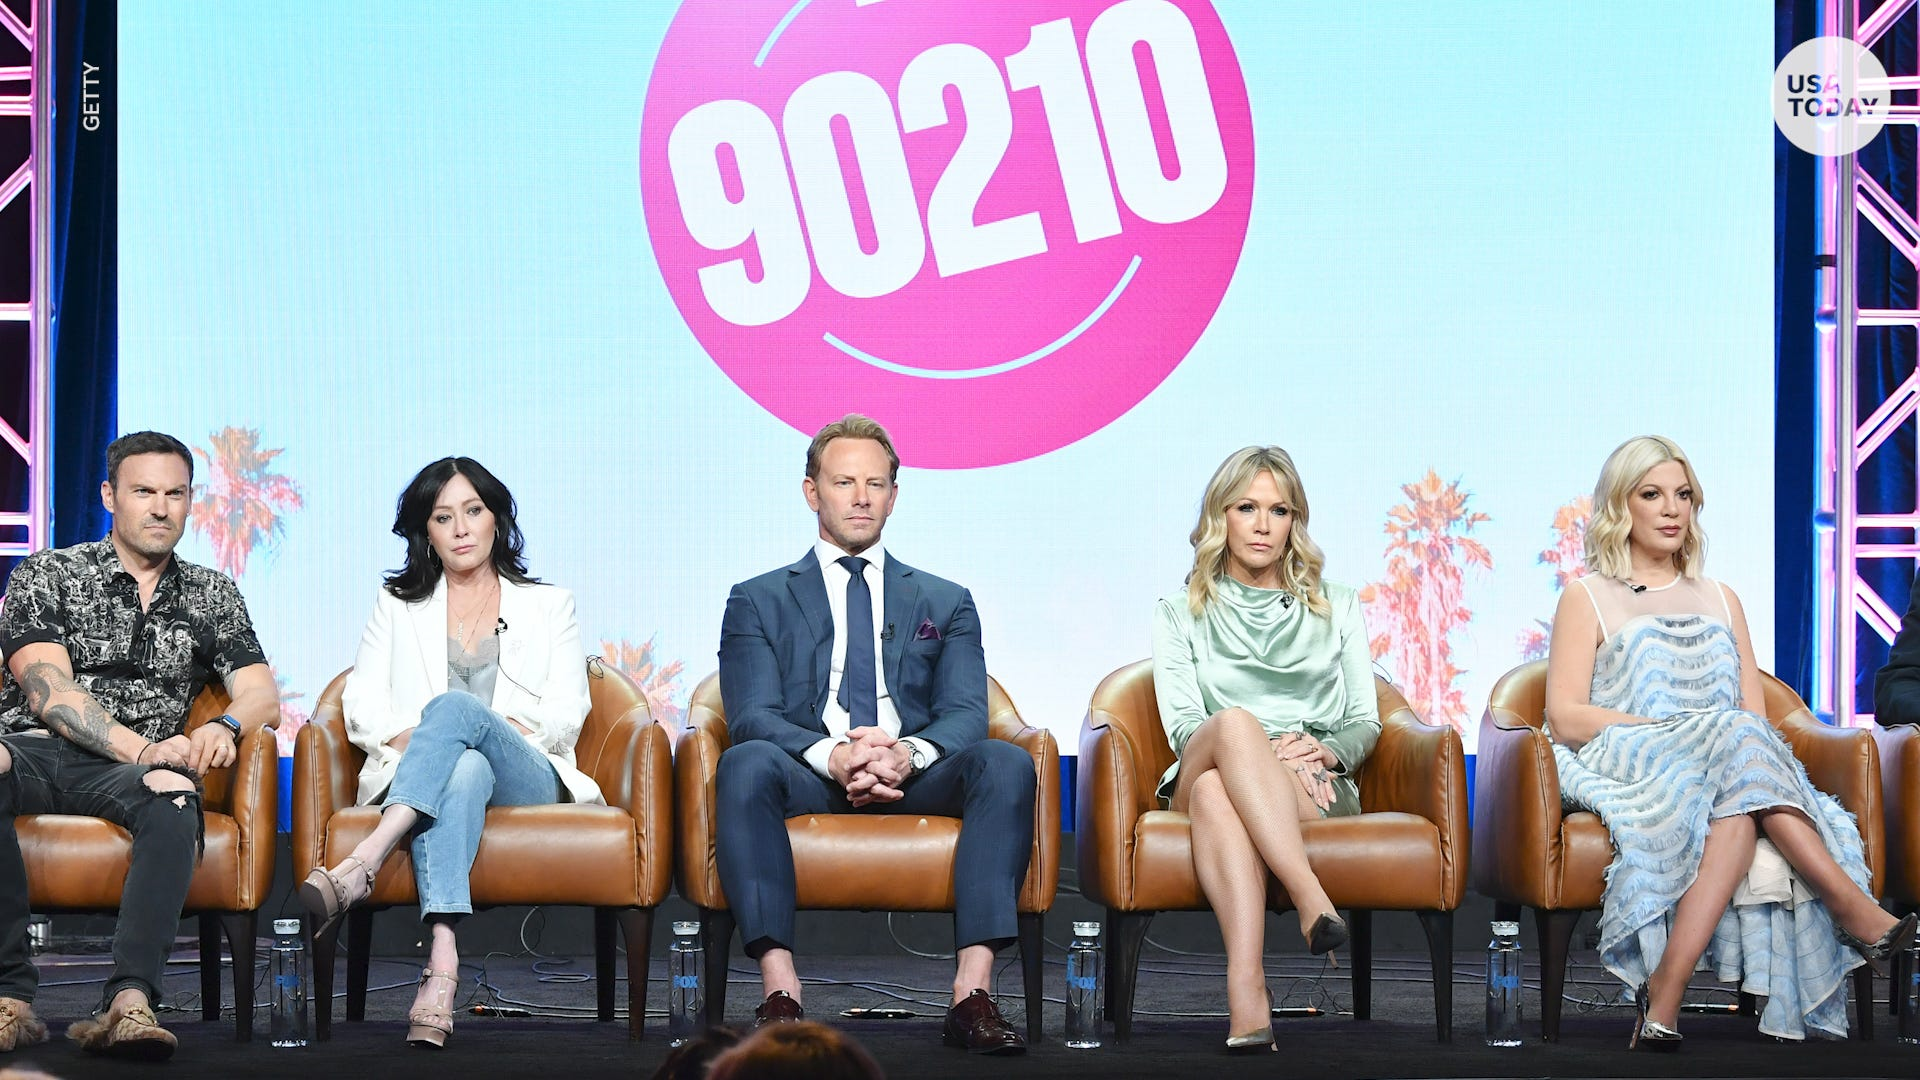 '90210' revival features cast members playing themselves